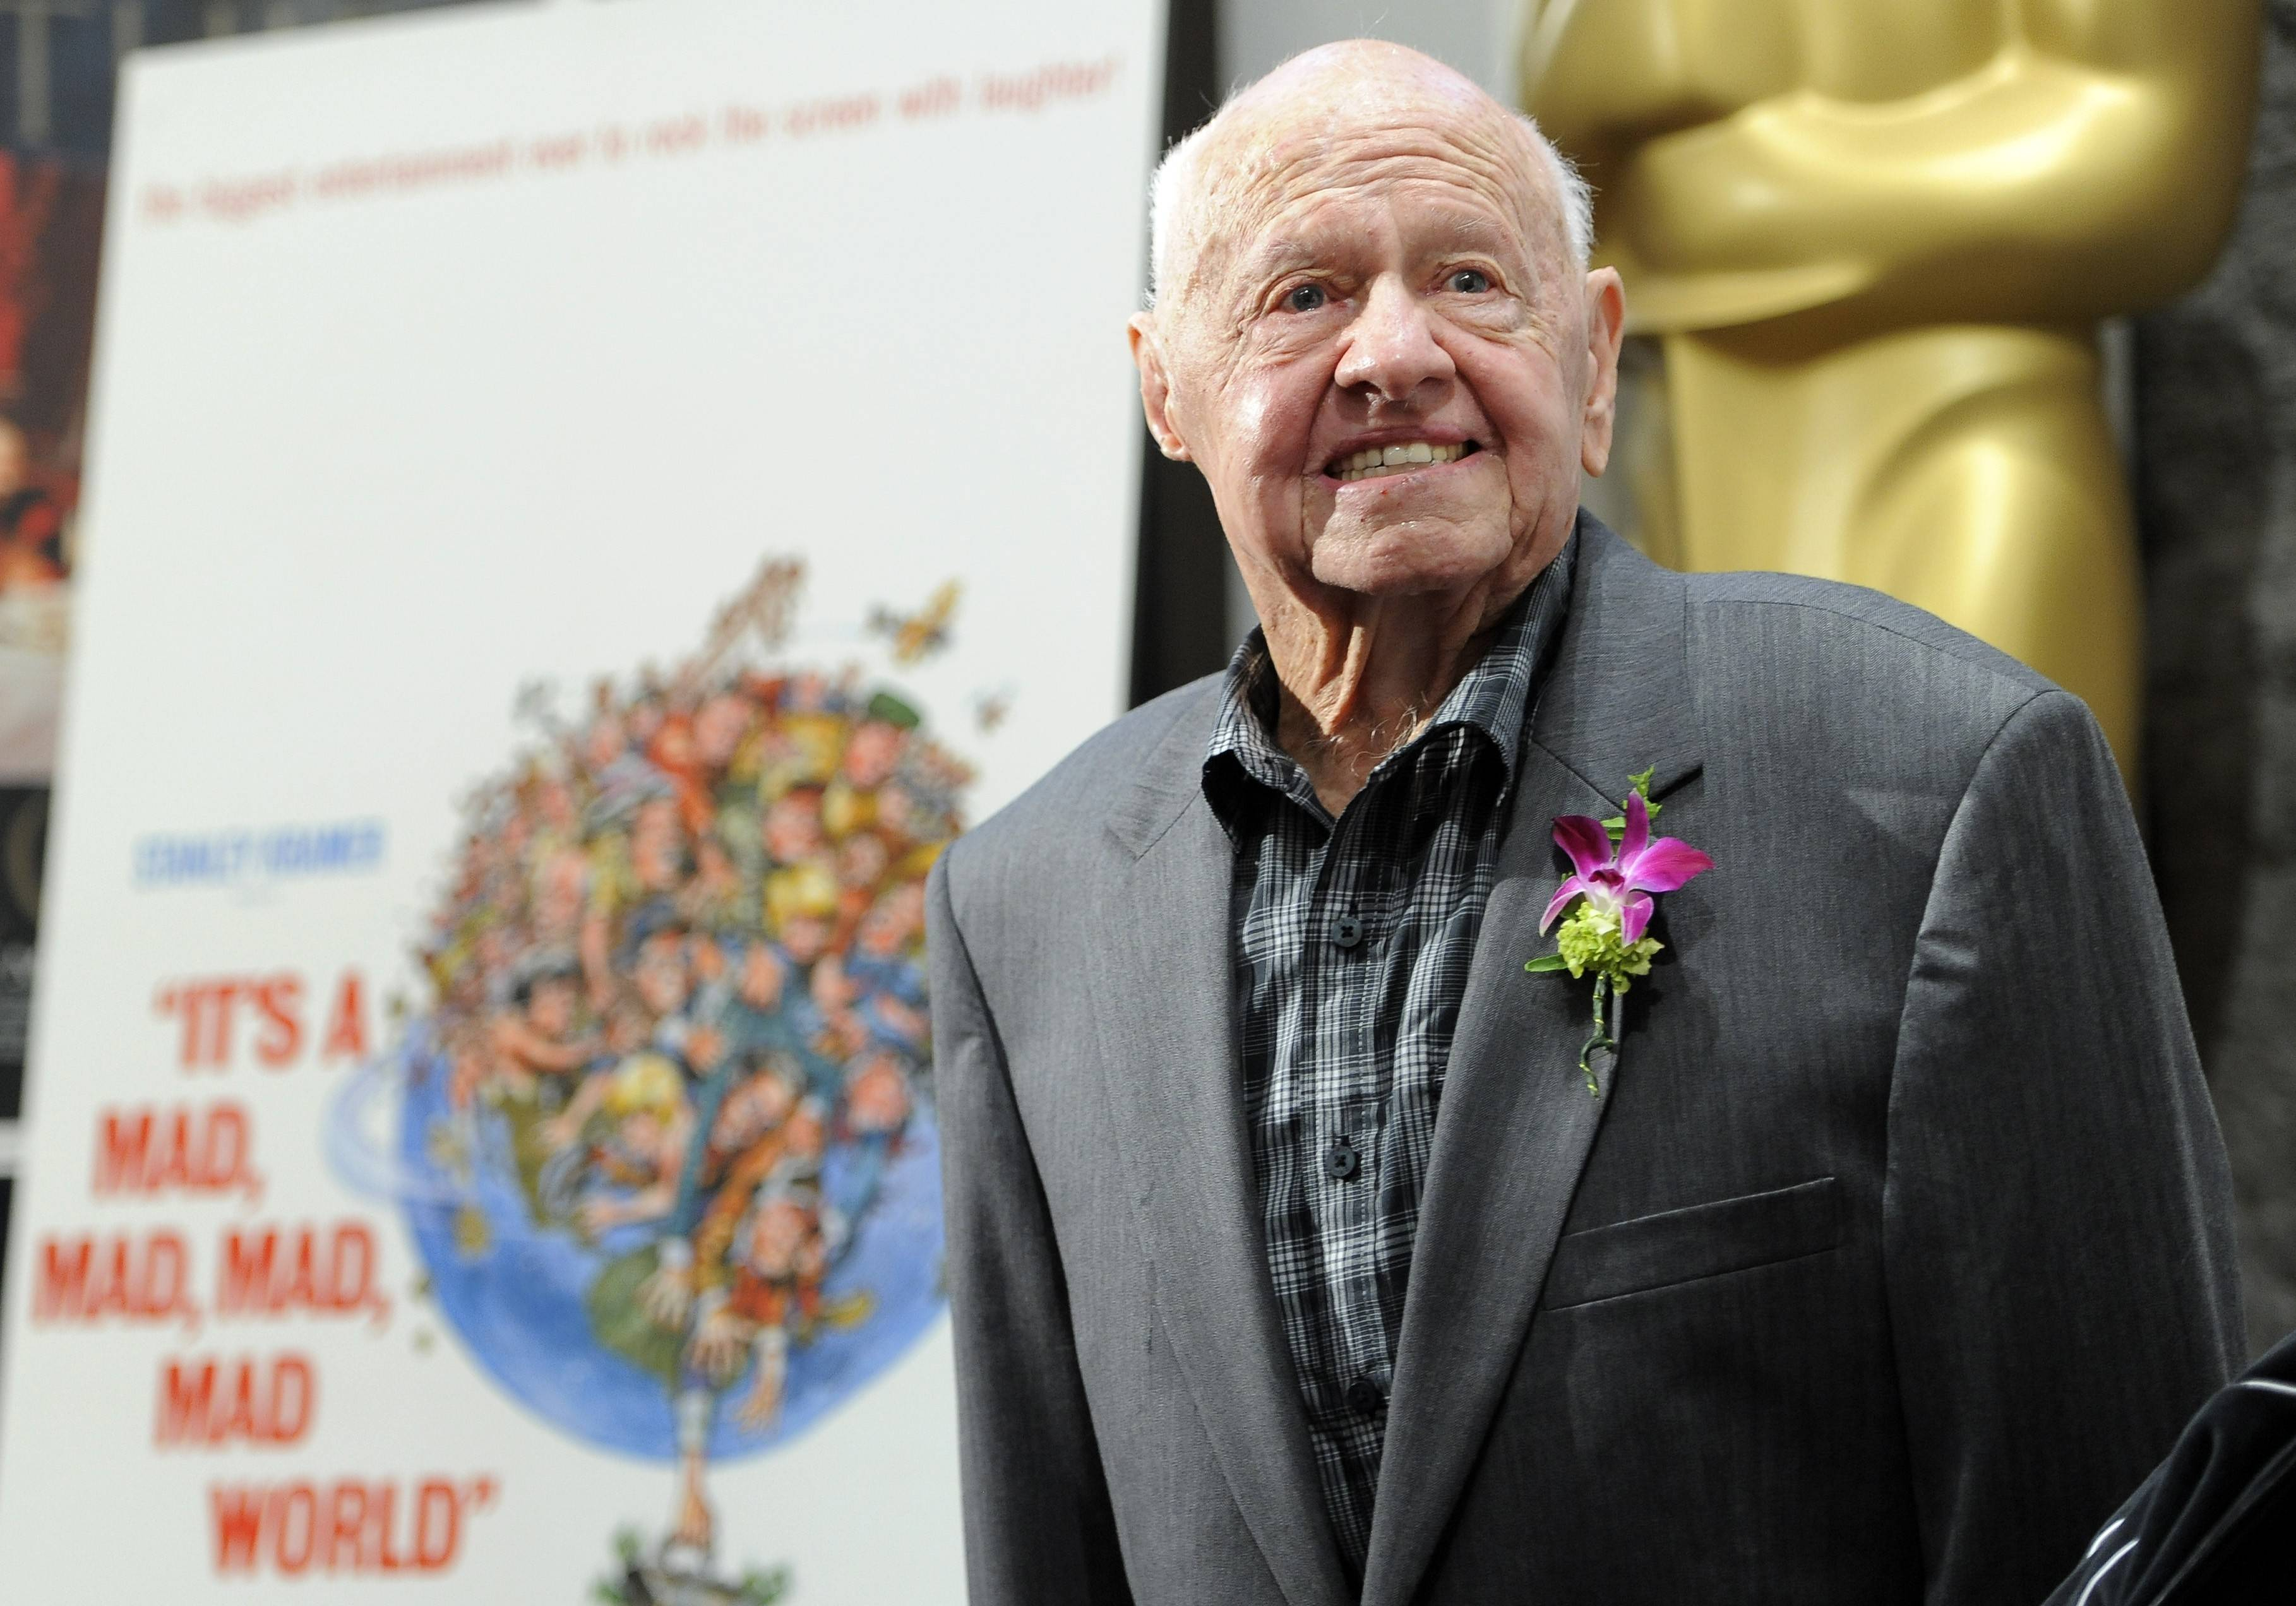 Mickey Rooney appears at the kickoff to an Academy of Motion Picture Arts and Sciences film festival at the Samuel Goldwyn Theater in Beverly Hills, California.